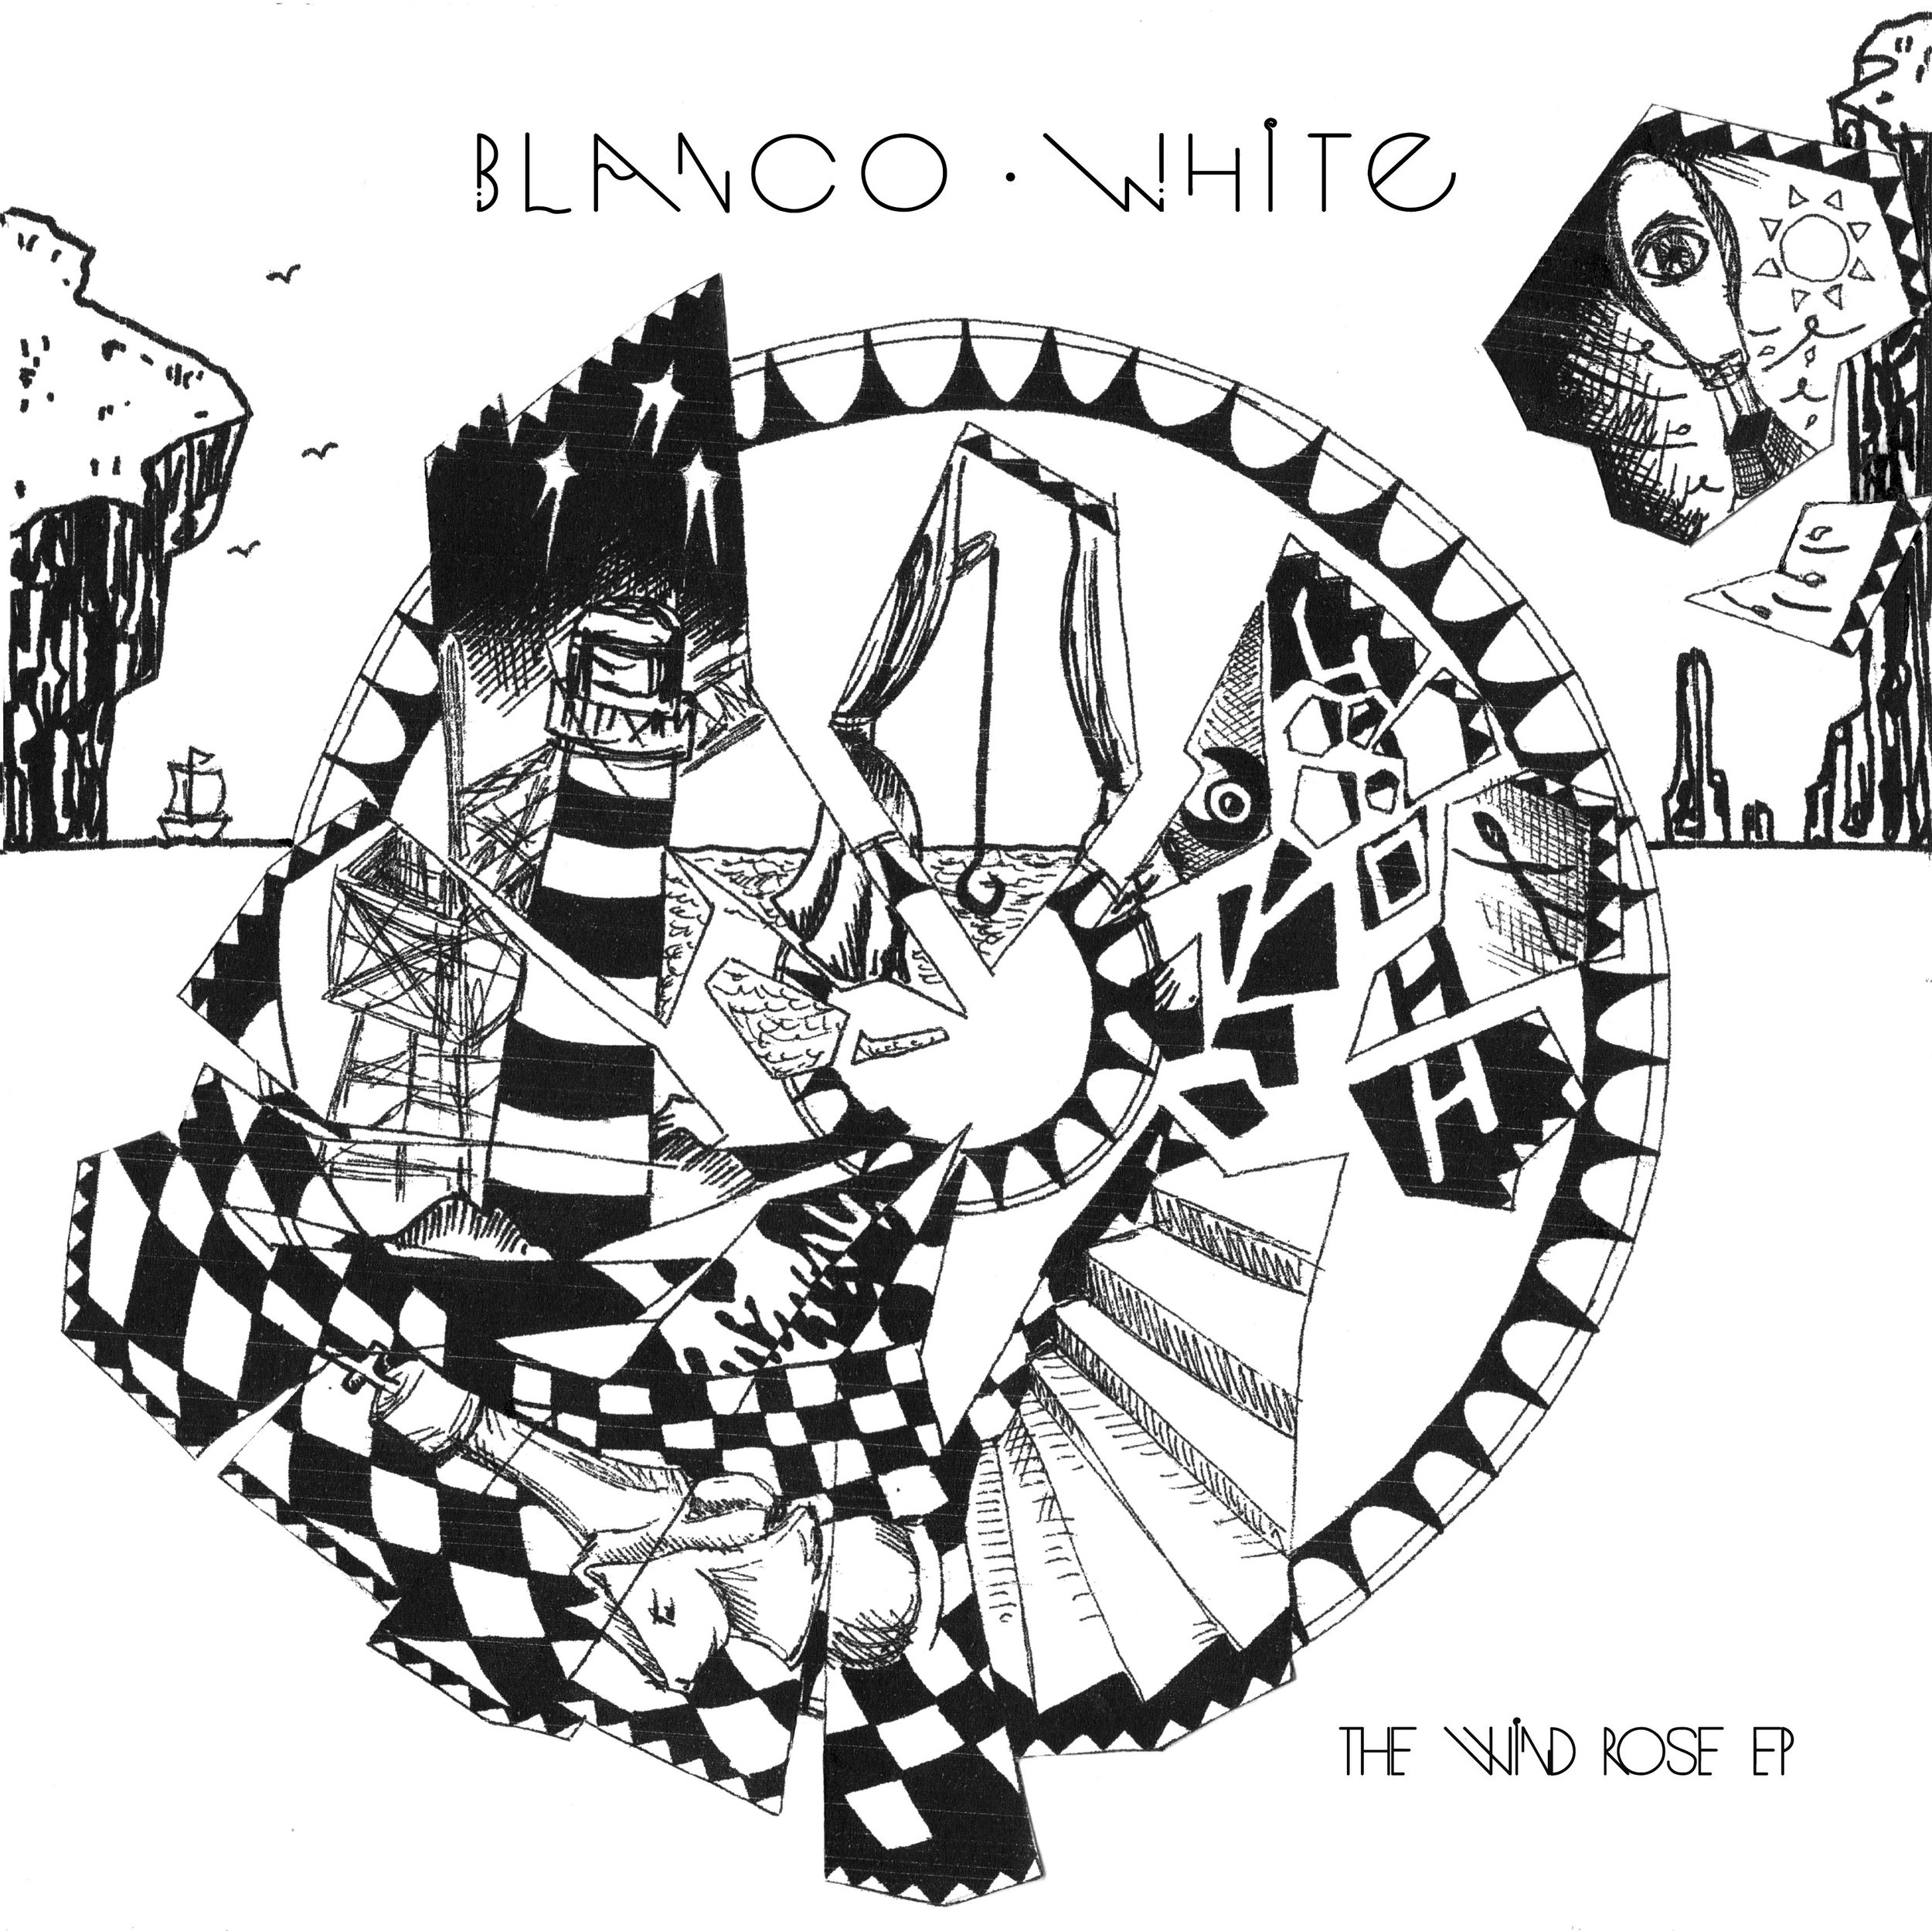 BLANCO WHITE - THE WIND ROSE EP